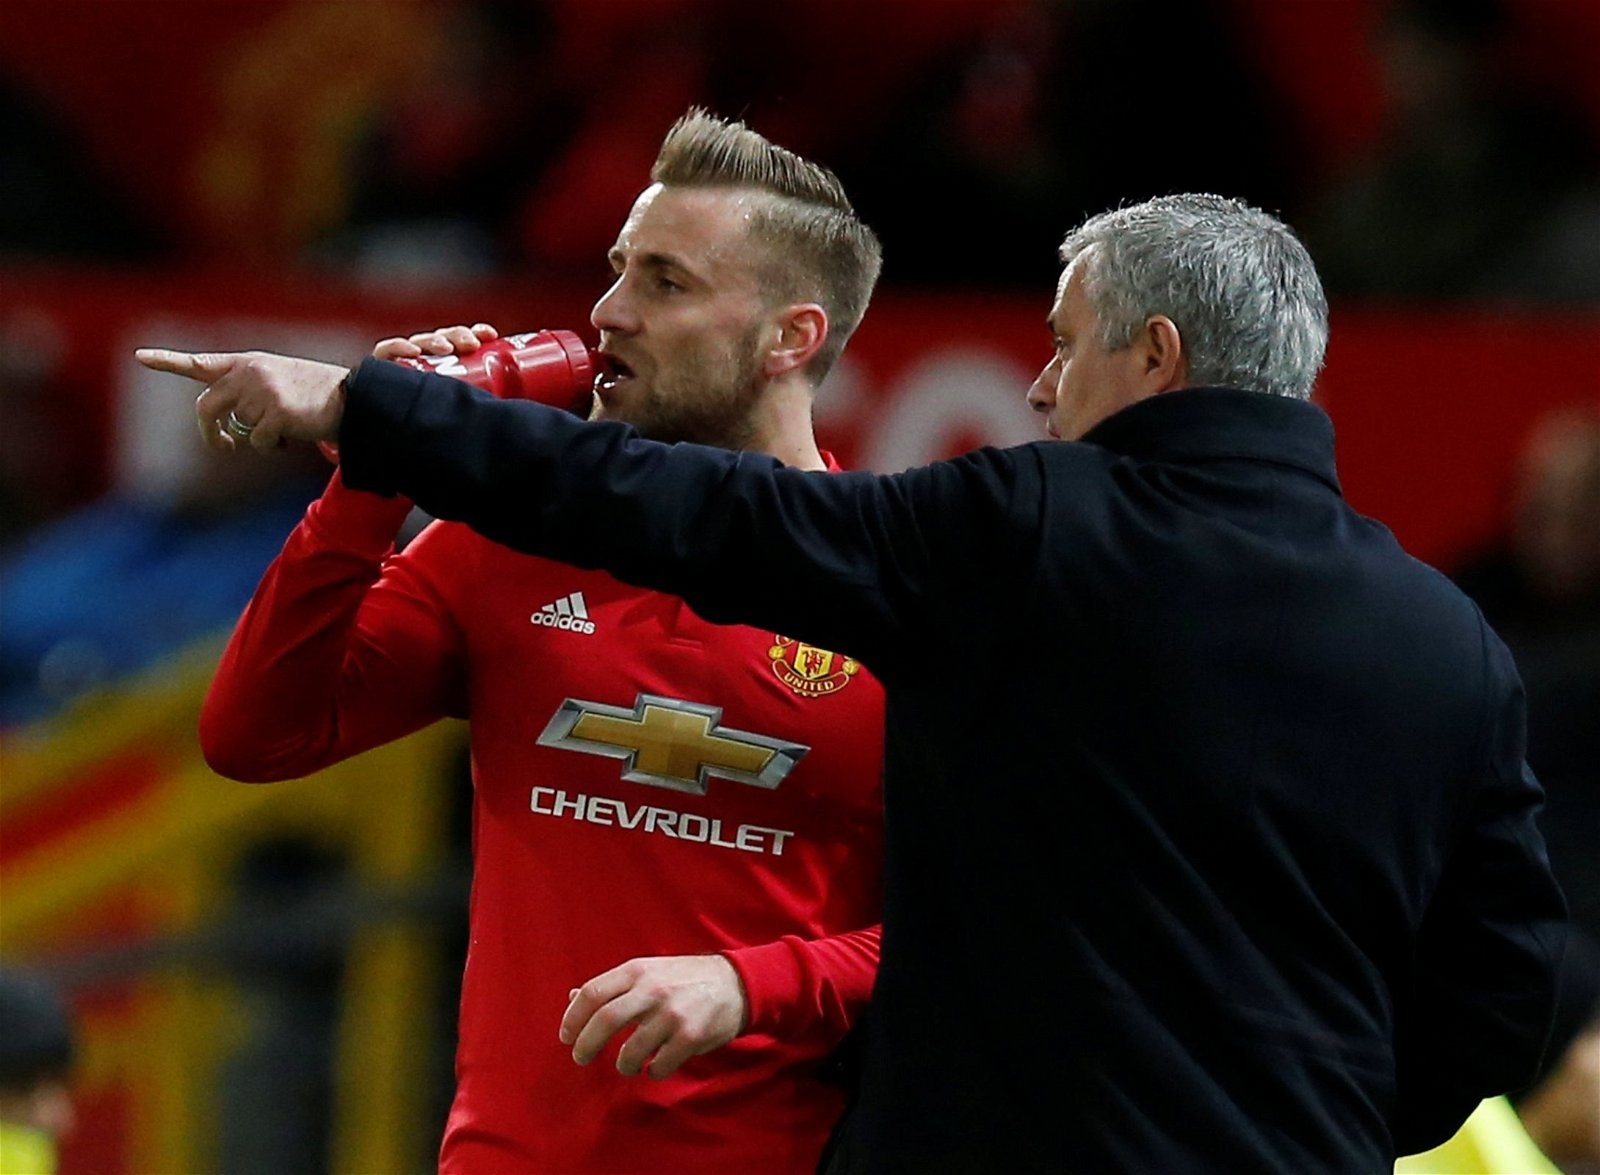 Jose Mourinho gives instructions to Luke Shaw